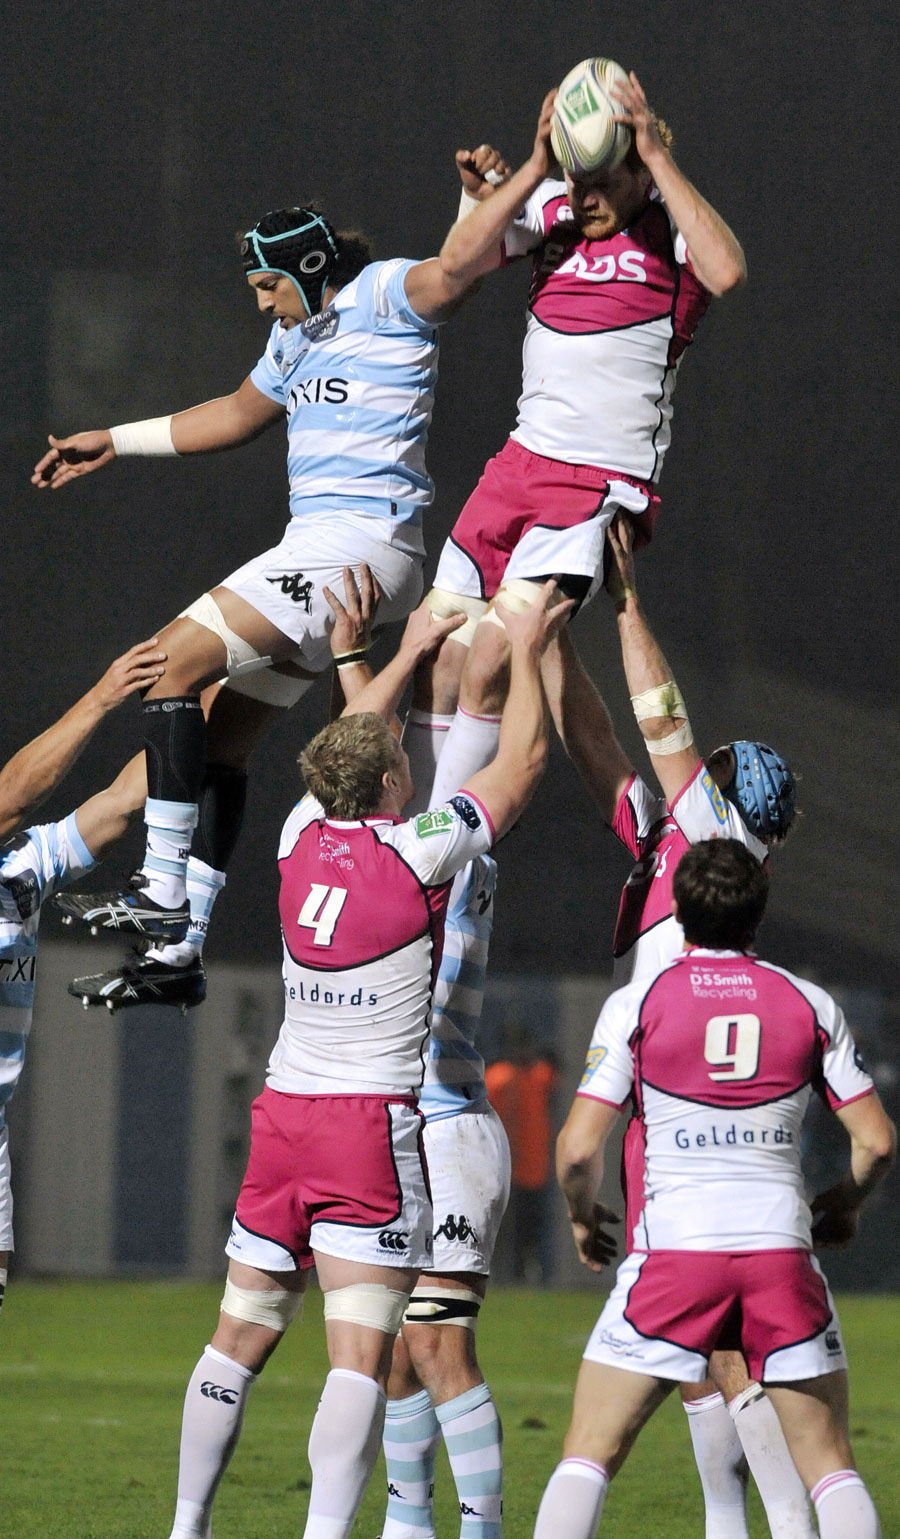 Cardiff Blues lock Paul Tito claims the ball at a lineout